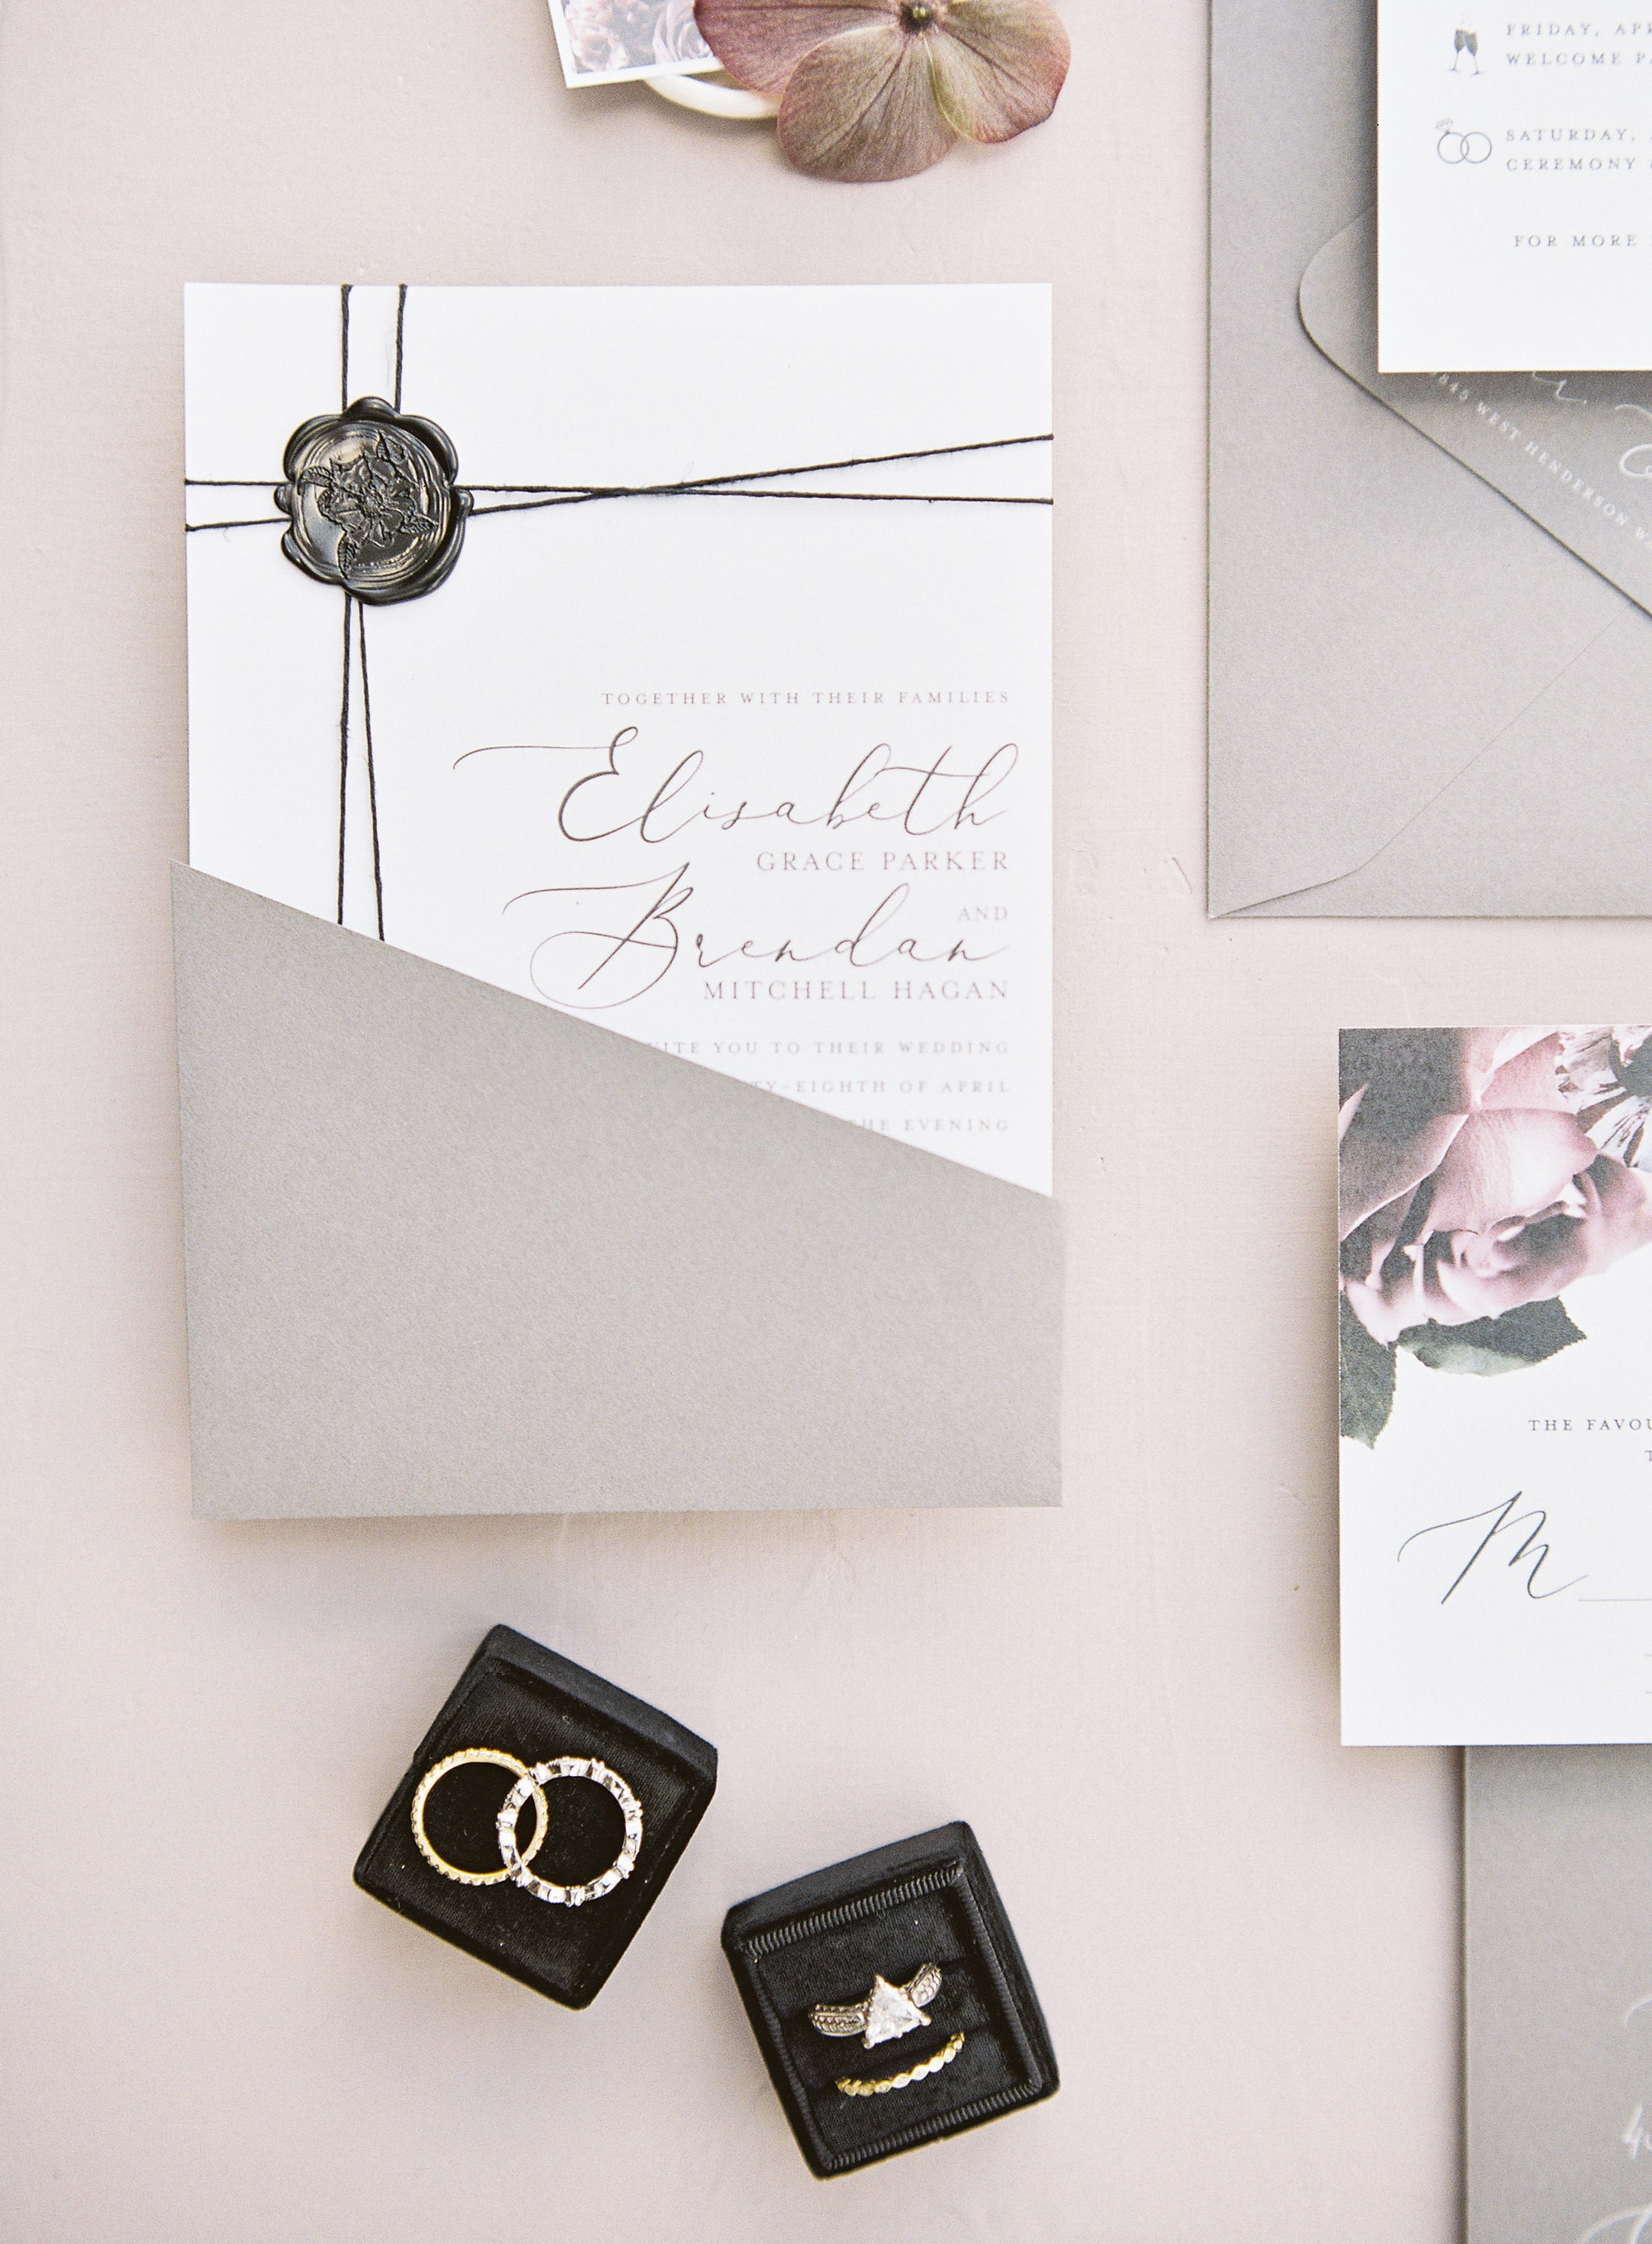 Invitations suite created by Viri Lovely Designed captured by Sunshower Photography for a styled shoot designed by Magnificent Moments Weddings at Tipsy Goat Estate